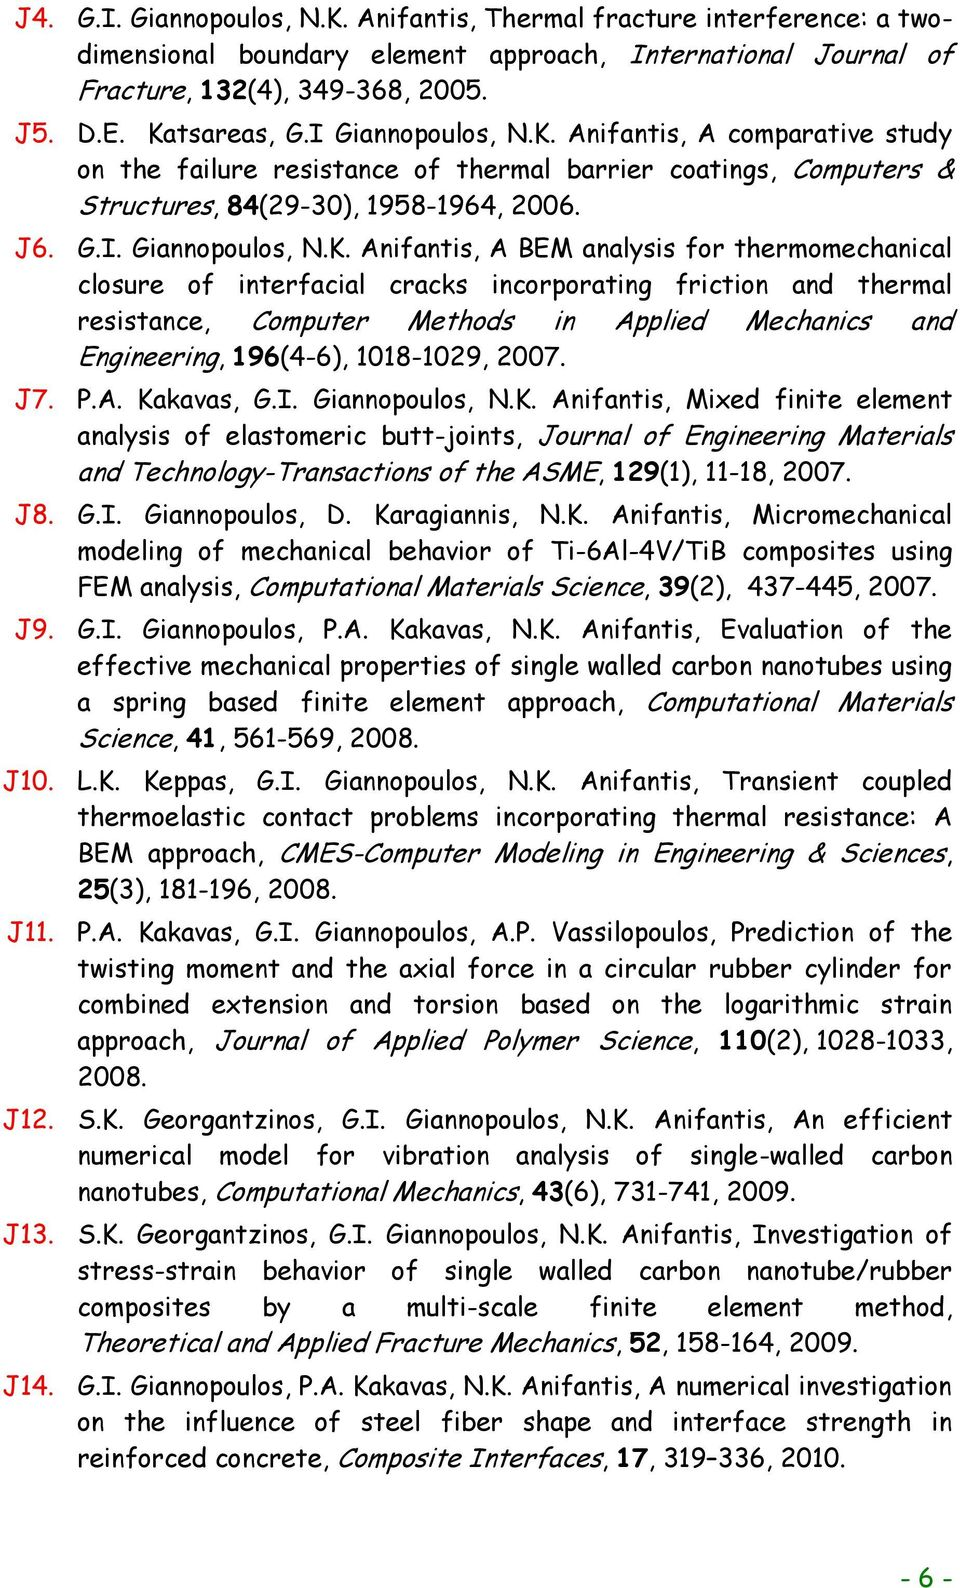 Anifantis, A comparative study on the failure resistance of thermal barrier coatings, Computers & Structures, 84(29-30), 1958-1964, 2006. J6. G.I. Giannopoulos, N.K.